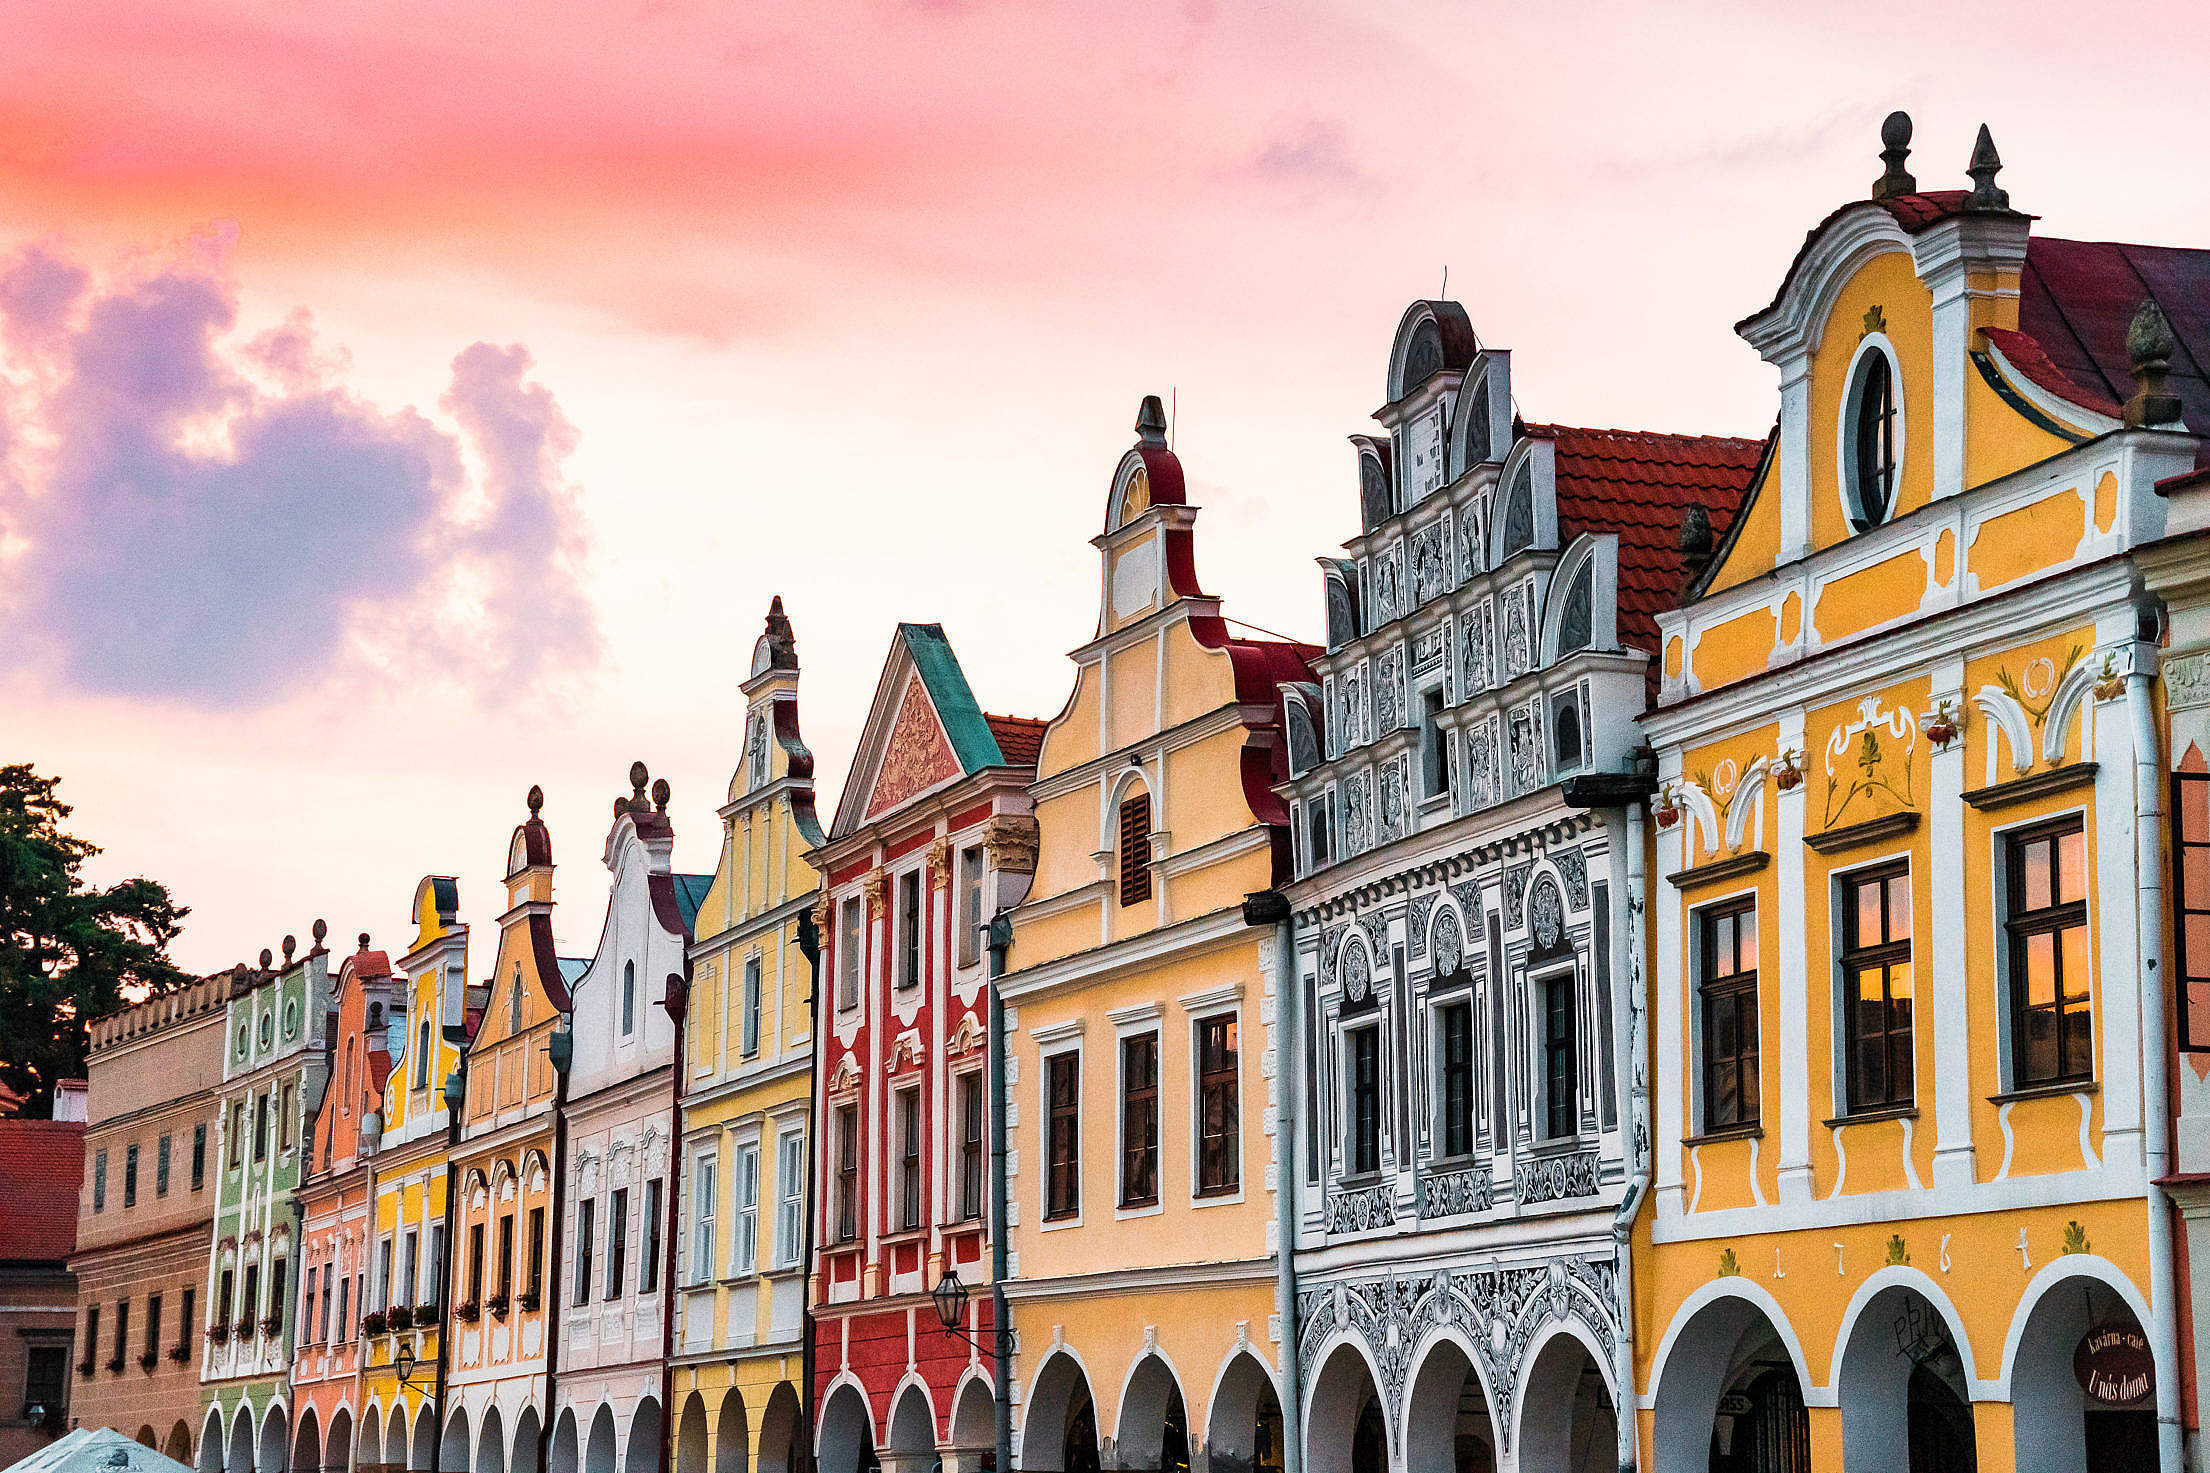 Download Colorful Architecture in Telč, Czechia Free Stock Photo